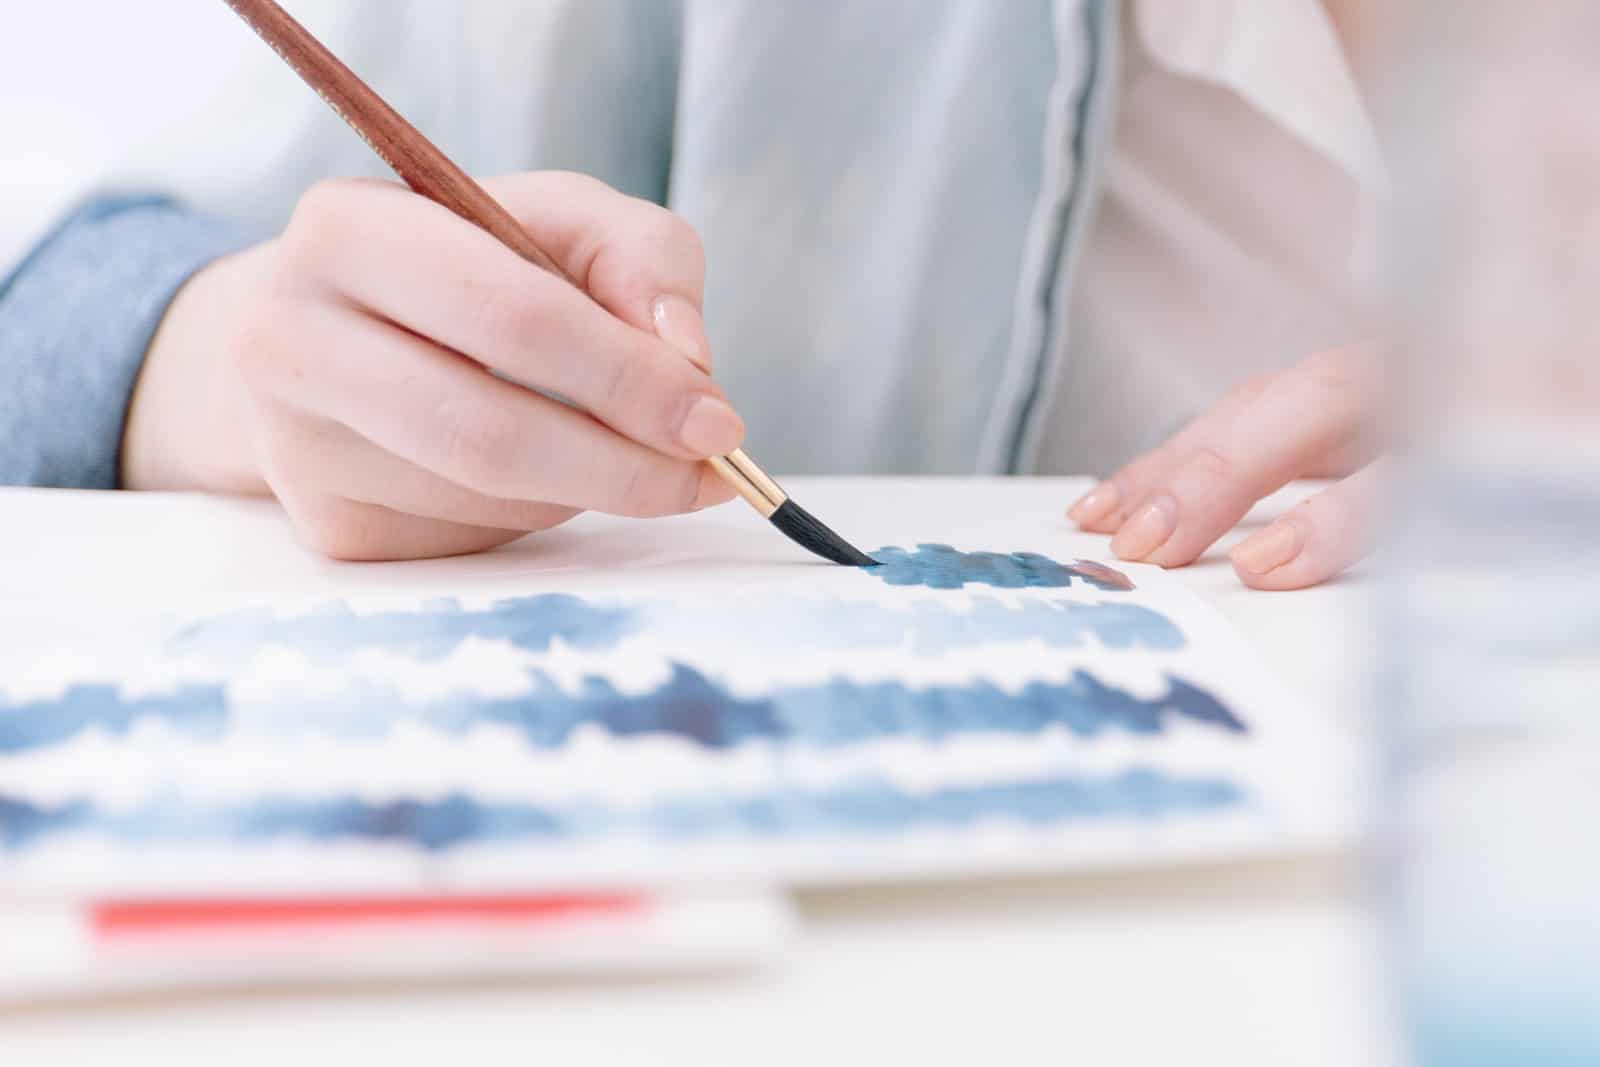 woman is painting with watercolor on paper